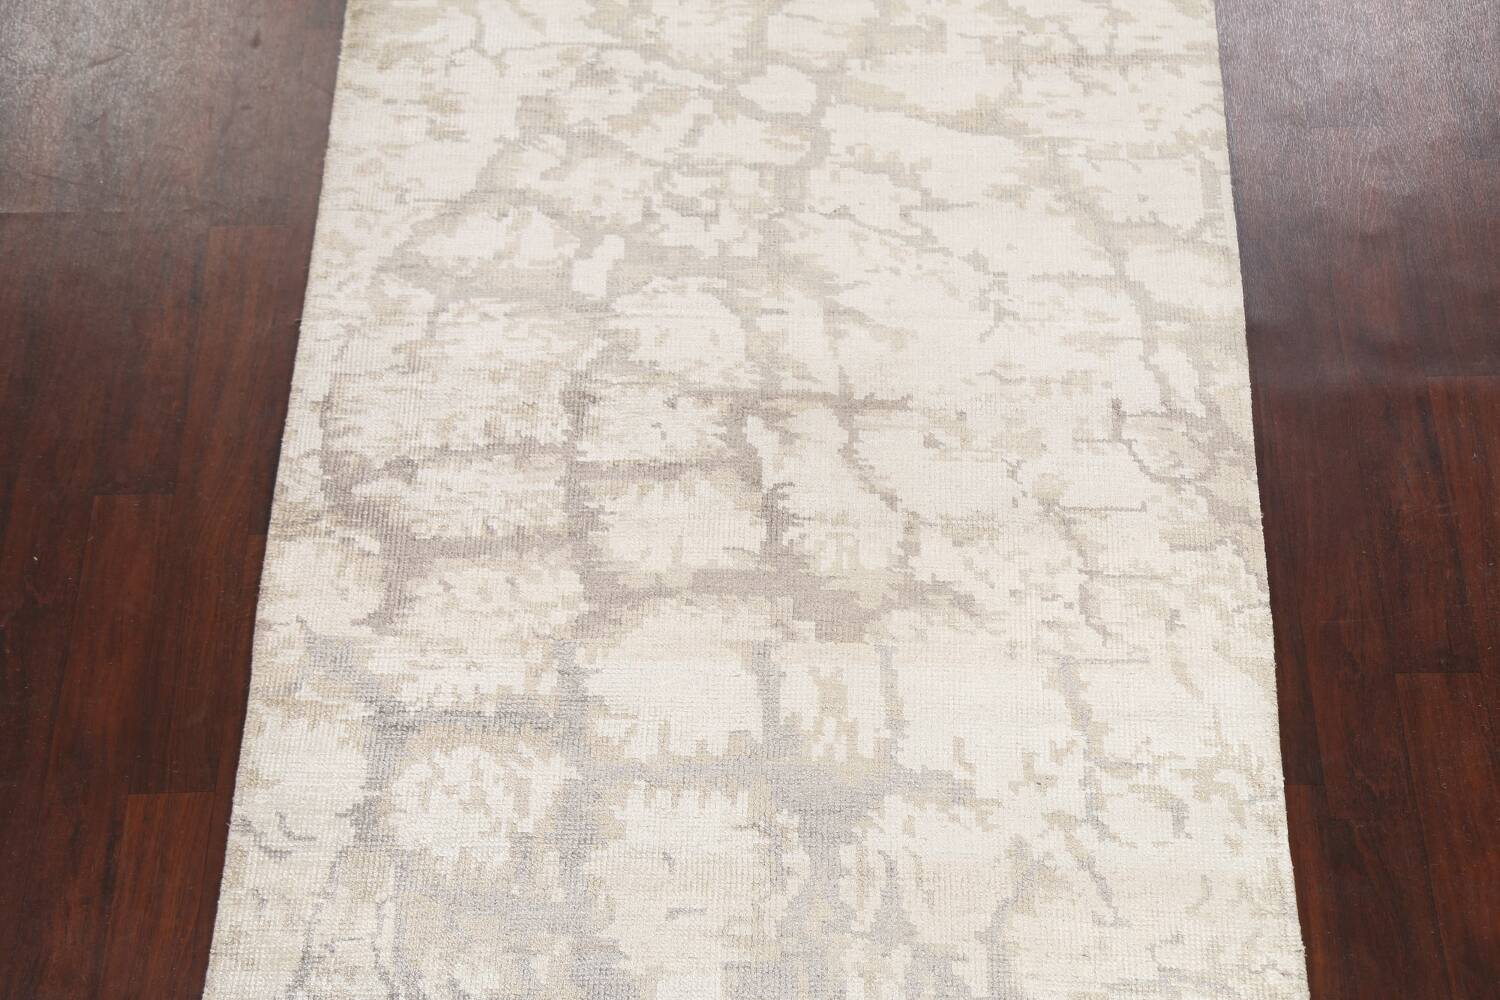 Contemporary Abstract Oriental Area Rug 5x7 image 3